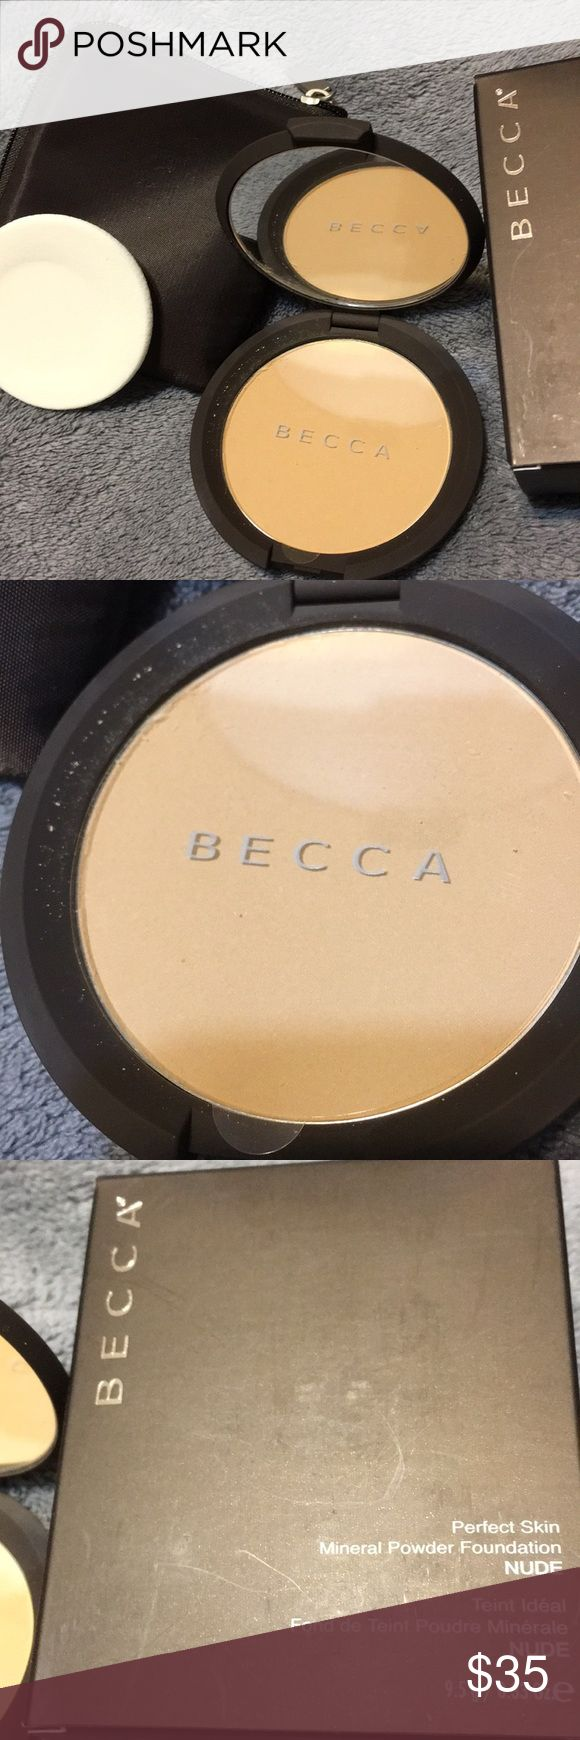 Becca Mineral Powder Foundation Nude Description A silky powder foundation made of pure mineral pigments Lightweight & effortlessly glides on Deliver sheer finish that feels light & looks fresh all day Buildable coverage with antioxidant protection Leaves you a soft, smooth & luminous complexion Suitable for all skin types BECCA Makeup